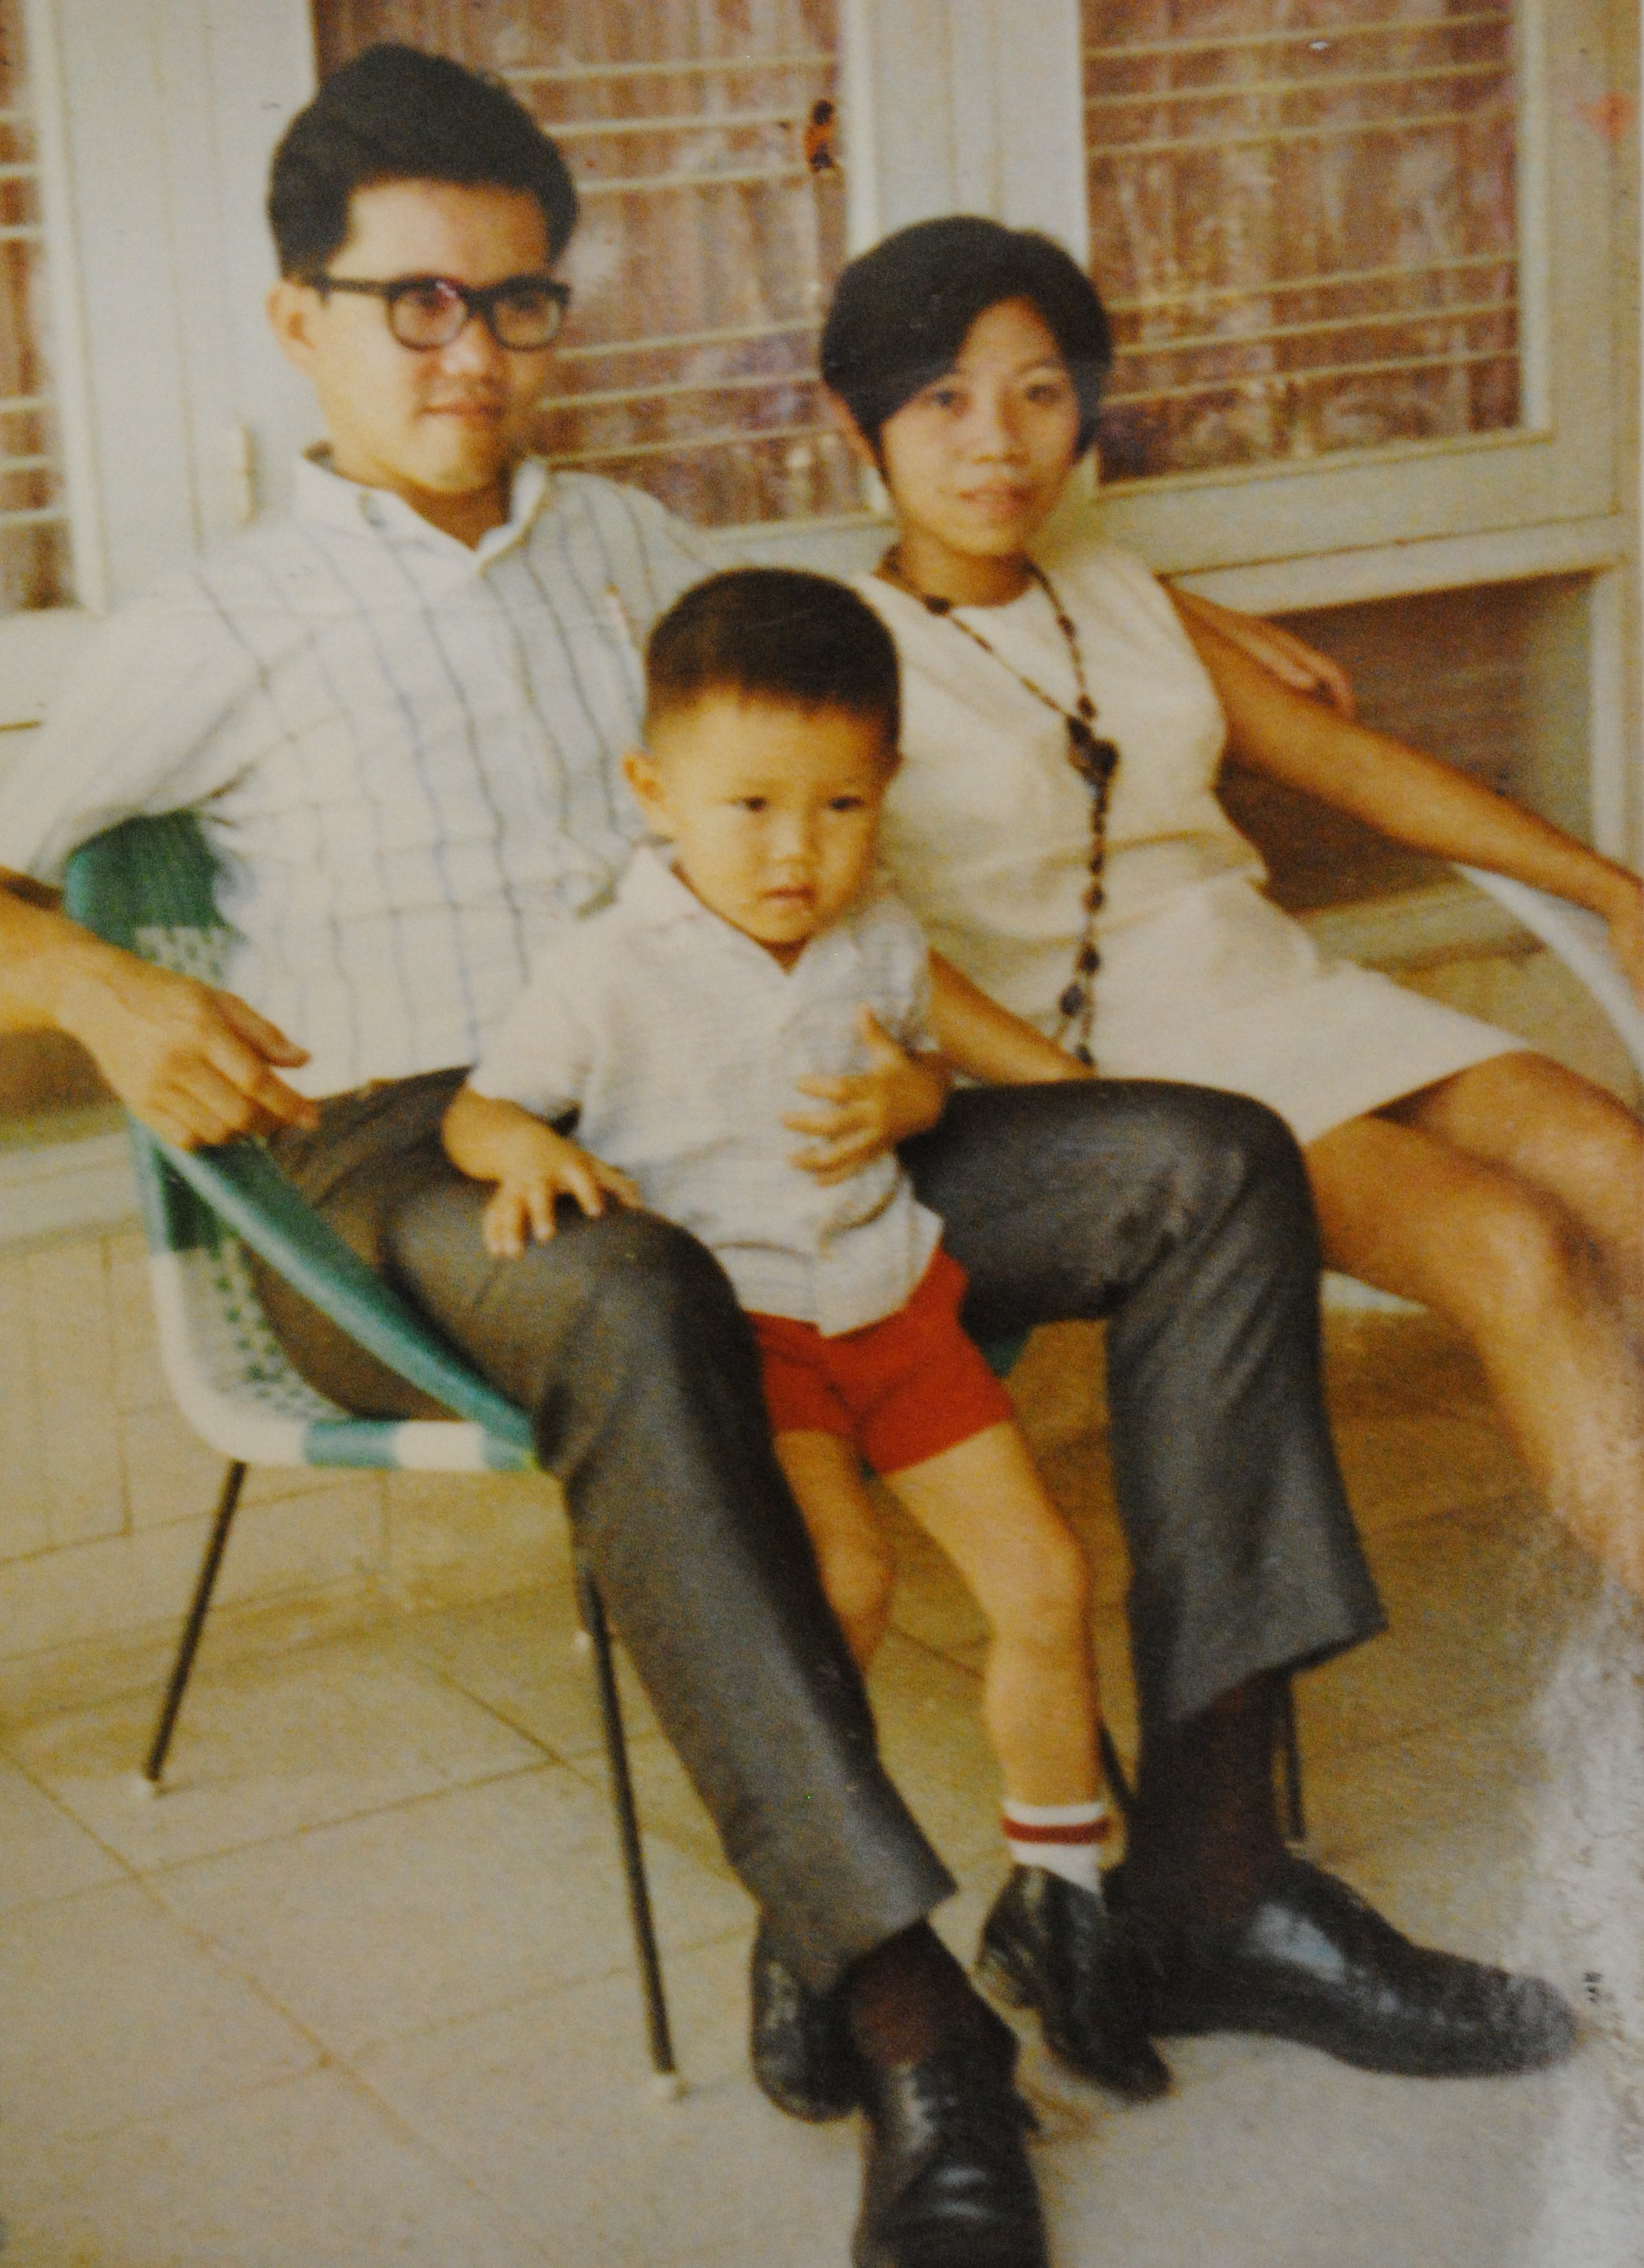 Steven Ho and parents